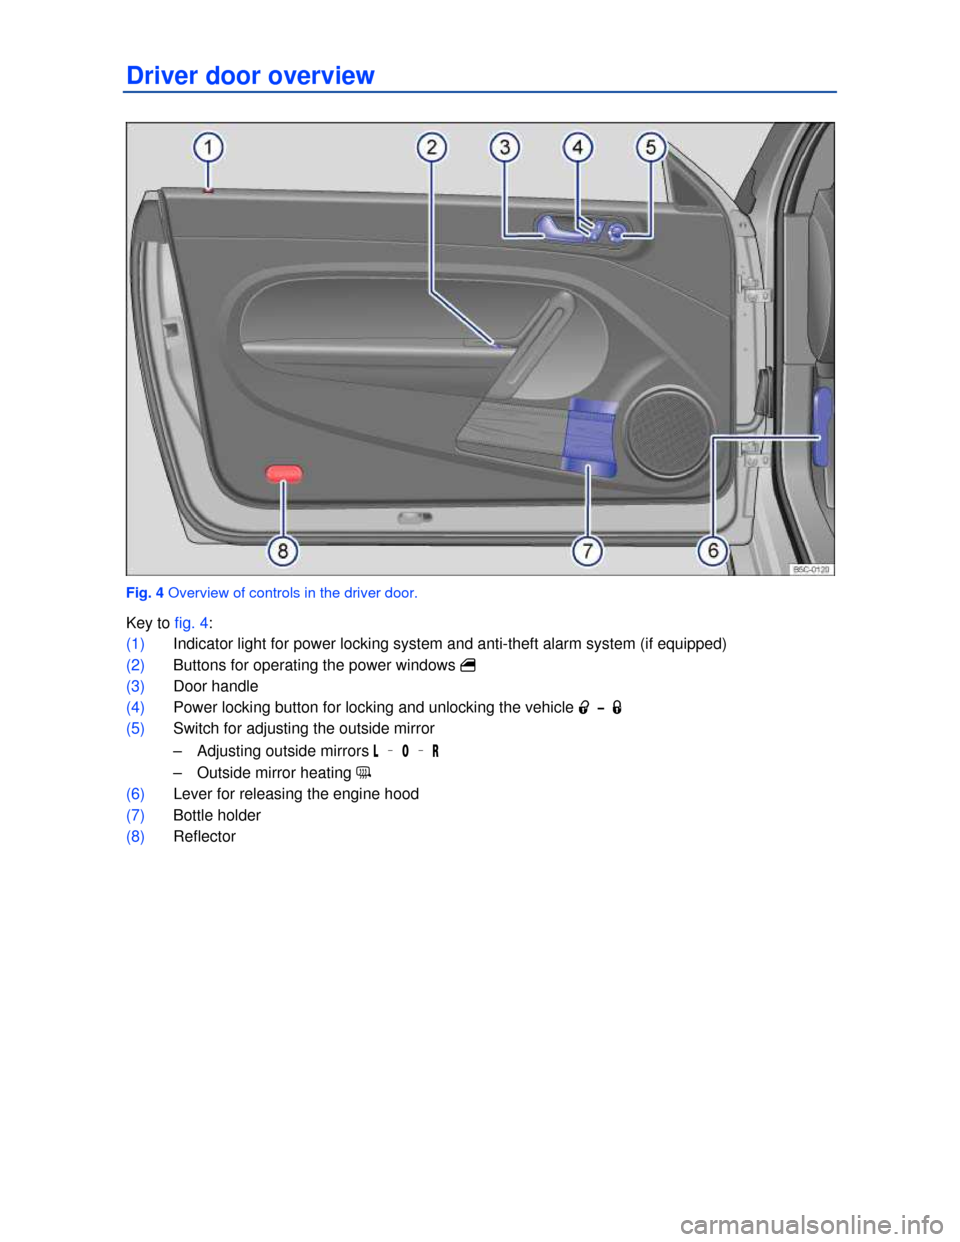 VOLKSWAGEN BEETLE 2013 3.G Owners Manual   Driver door overview    Fig. 4 Overview of controls in the driver door.  Key to fig. 4:  (1) Indicator light for power locking system and anti-theft alarm system (if equipped)   (2) Buttons for oper